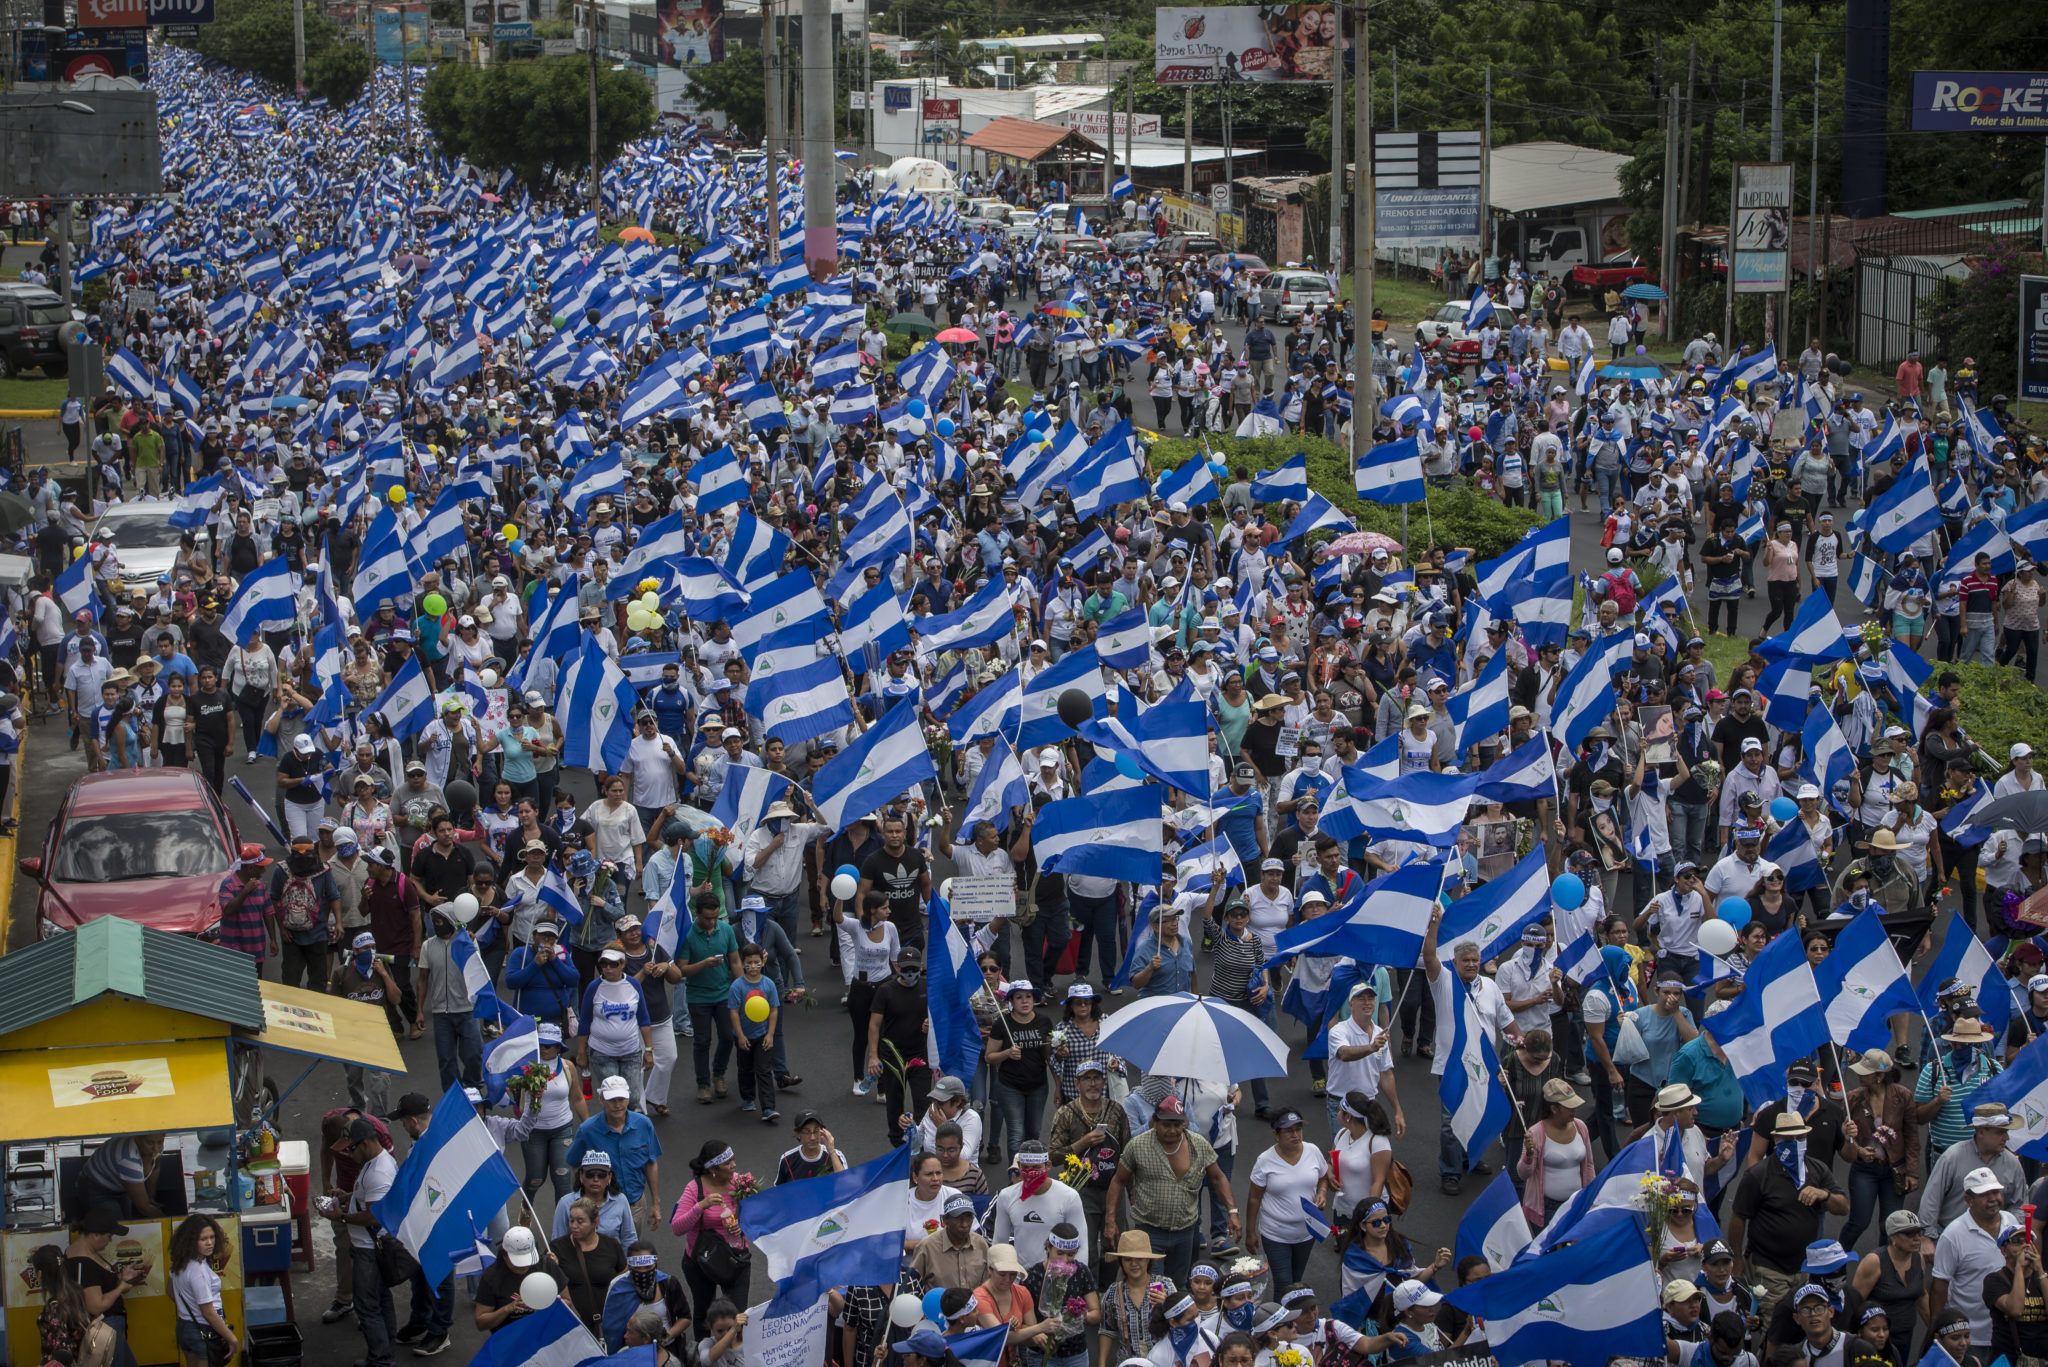 Nicaragua: Urgent Action – Activists face charges for handing out water